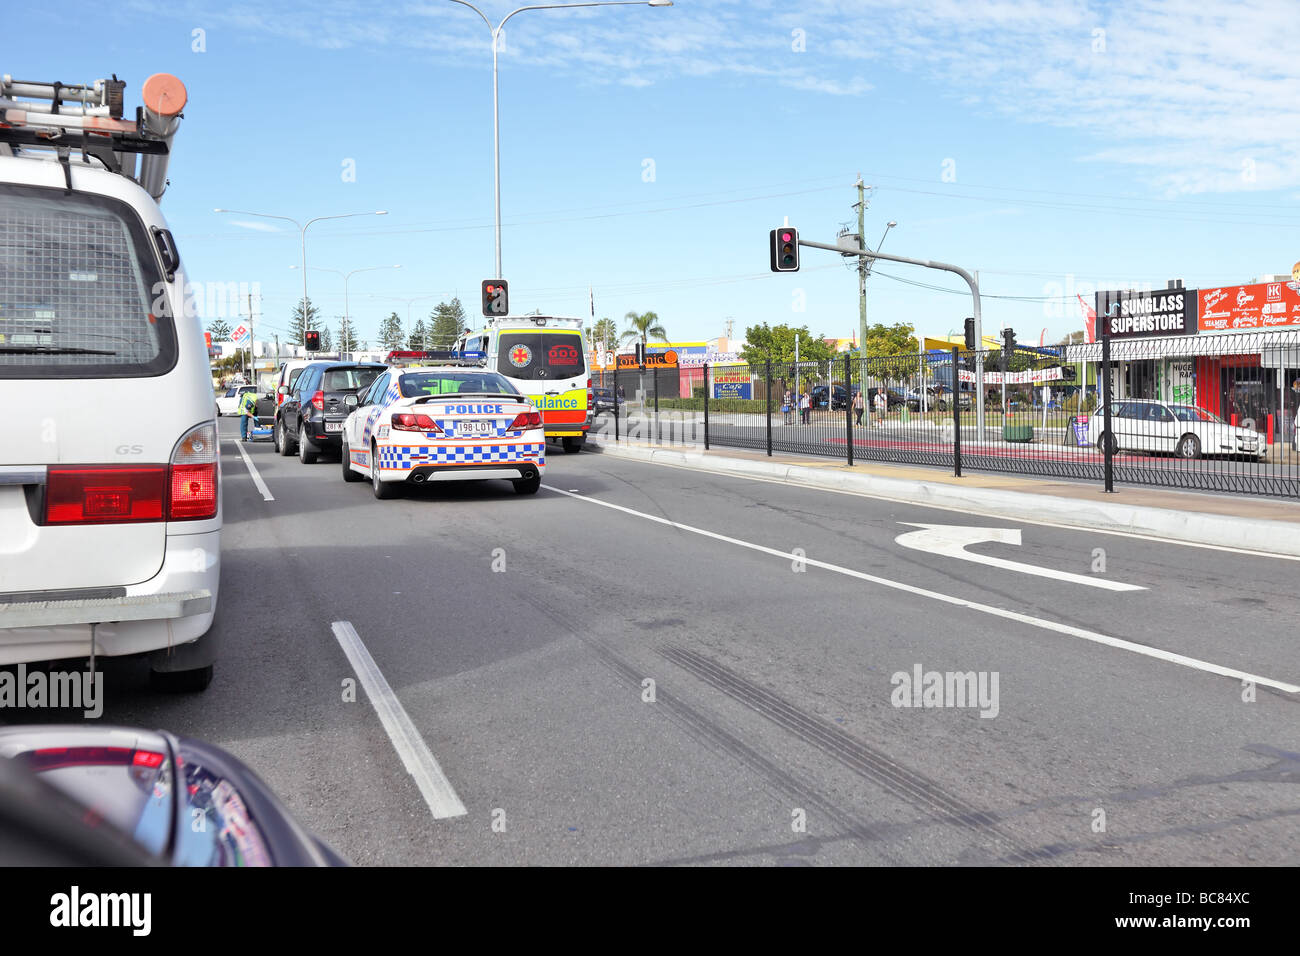 Road accident on highway requiring police and ambulance attendance - Stock Image